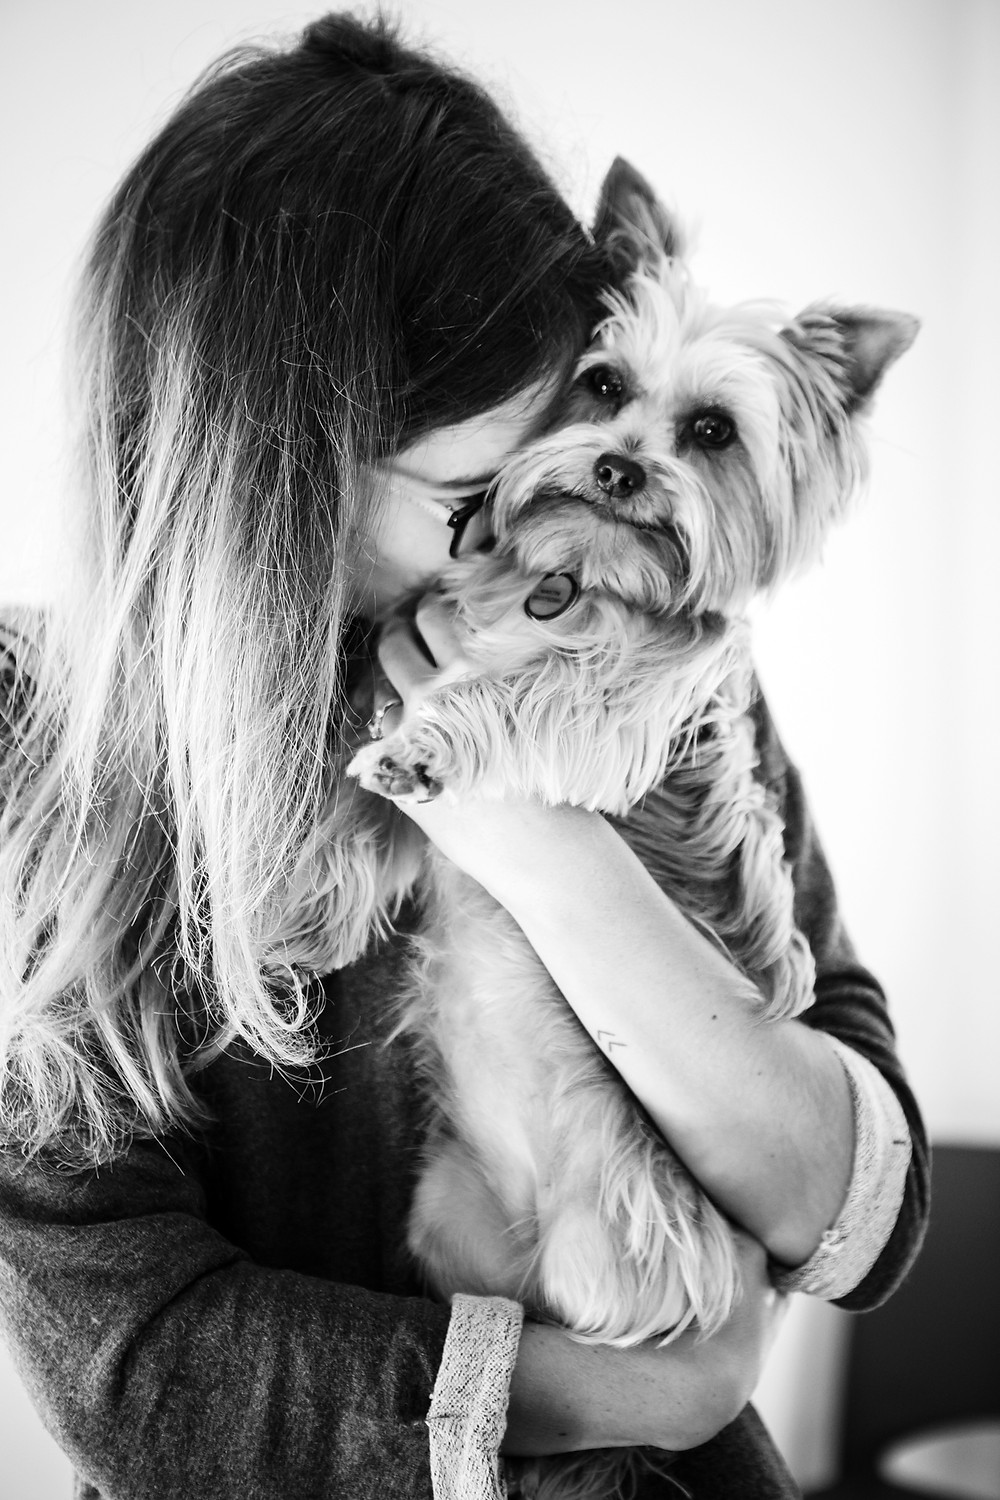 Pet photography in Cape Town. Tini the teacup yorkie with her owner